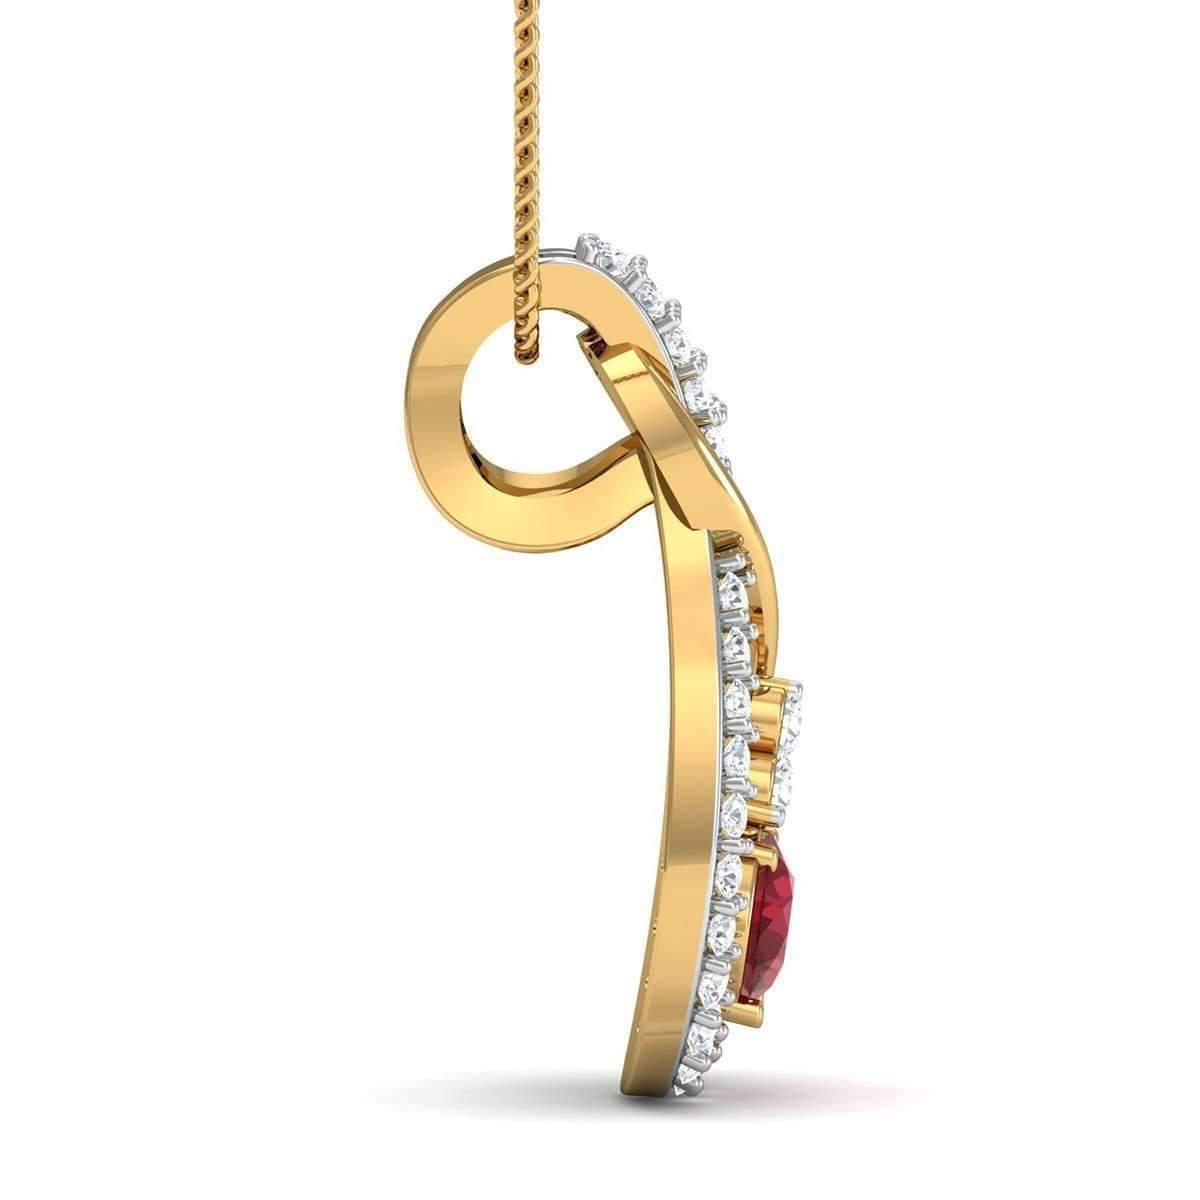 Diamoire Jewels Nature Inspired Oval Shape Ruby and Diamond Pendant in 14kt Yellow Gold 3LHWKz4f